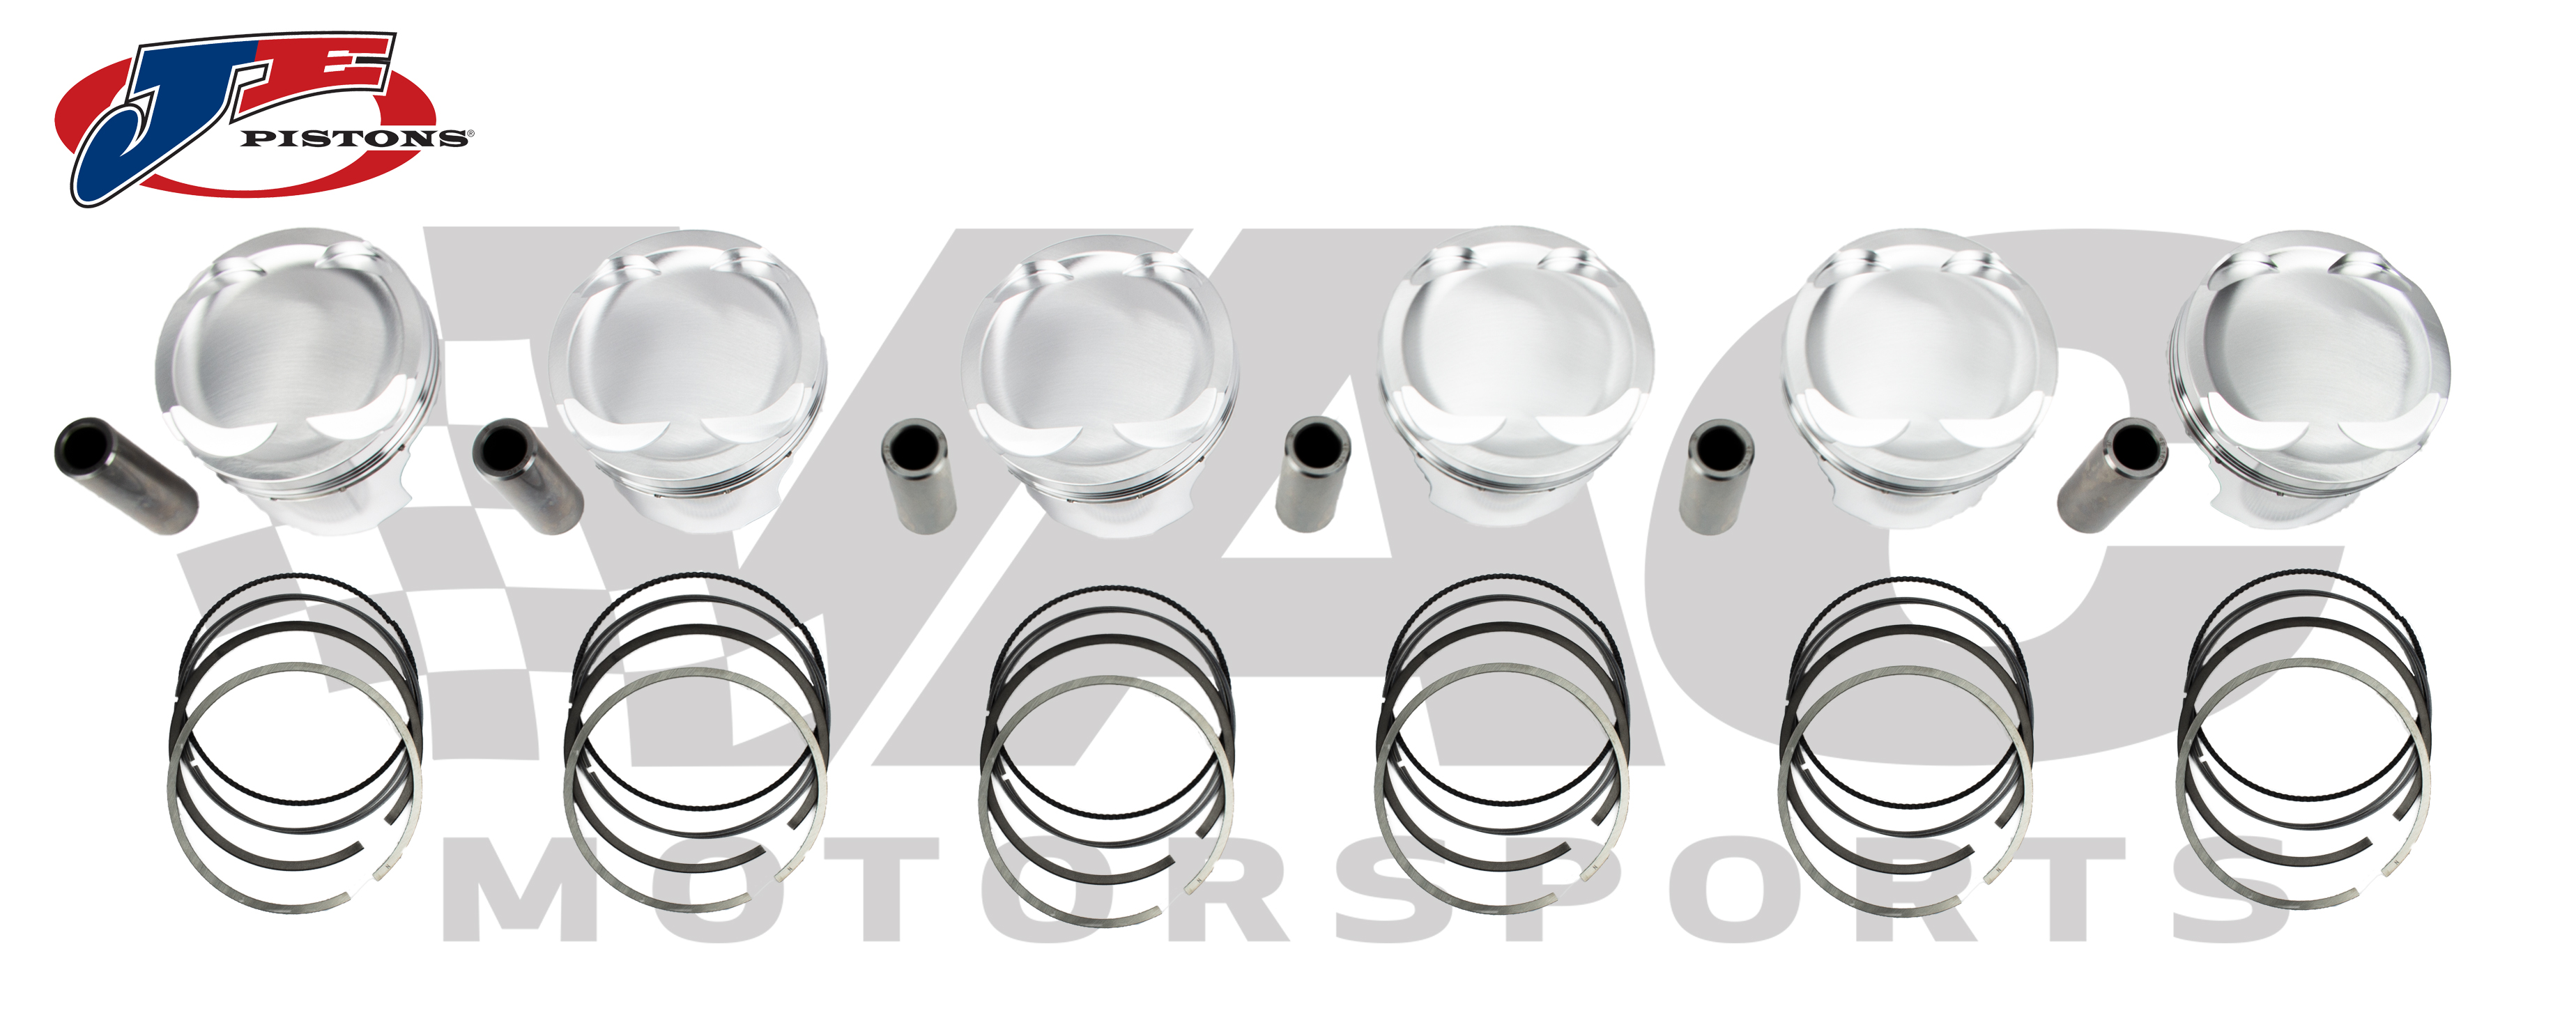 JE Pistons Forged Piston Set (BMW S50 US, 3.0L) THUMBNAIL